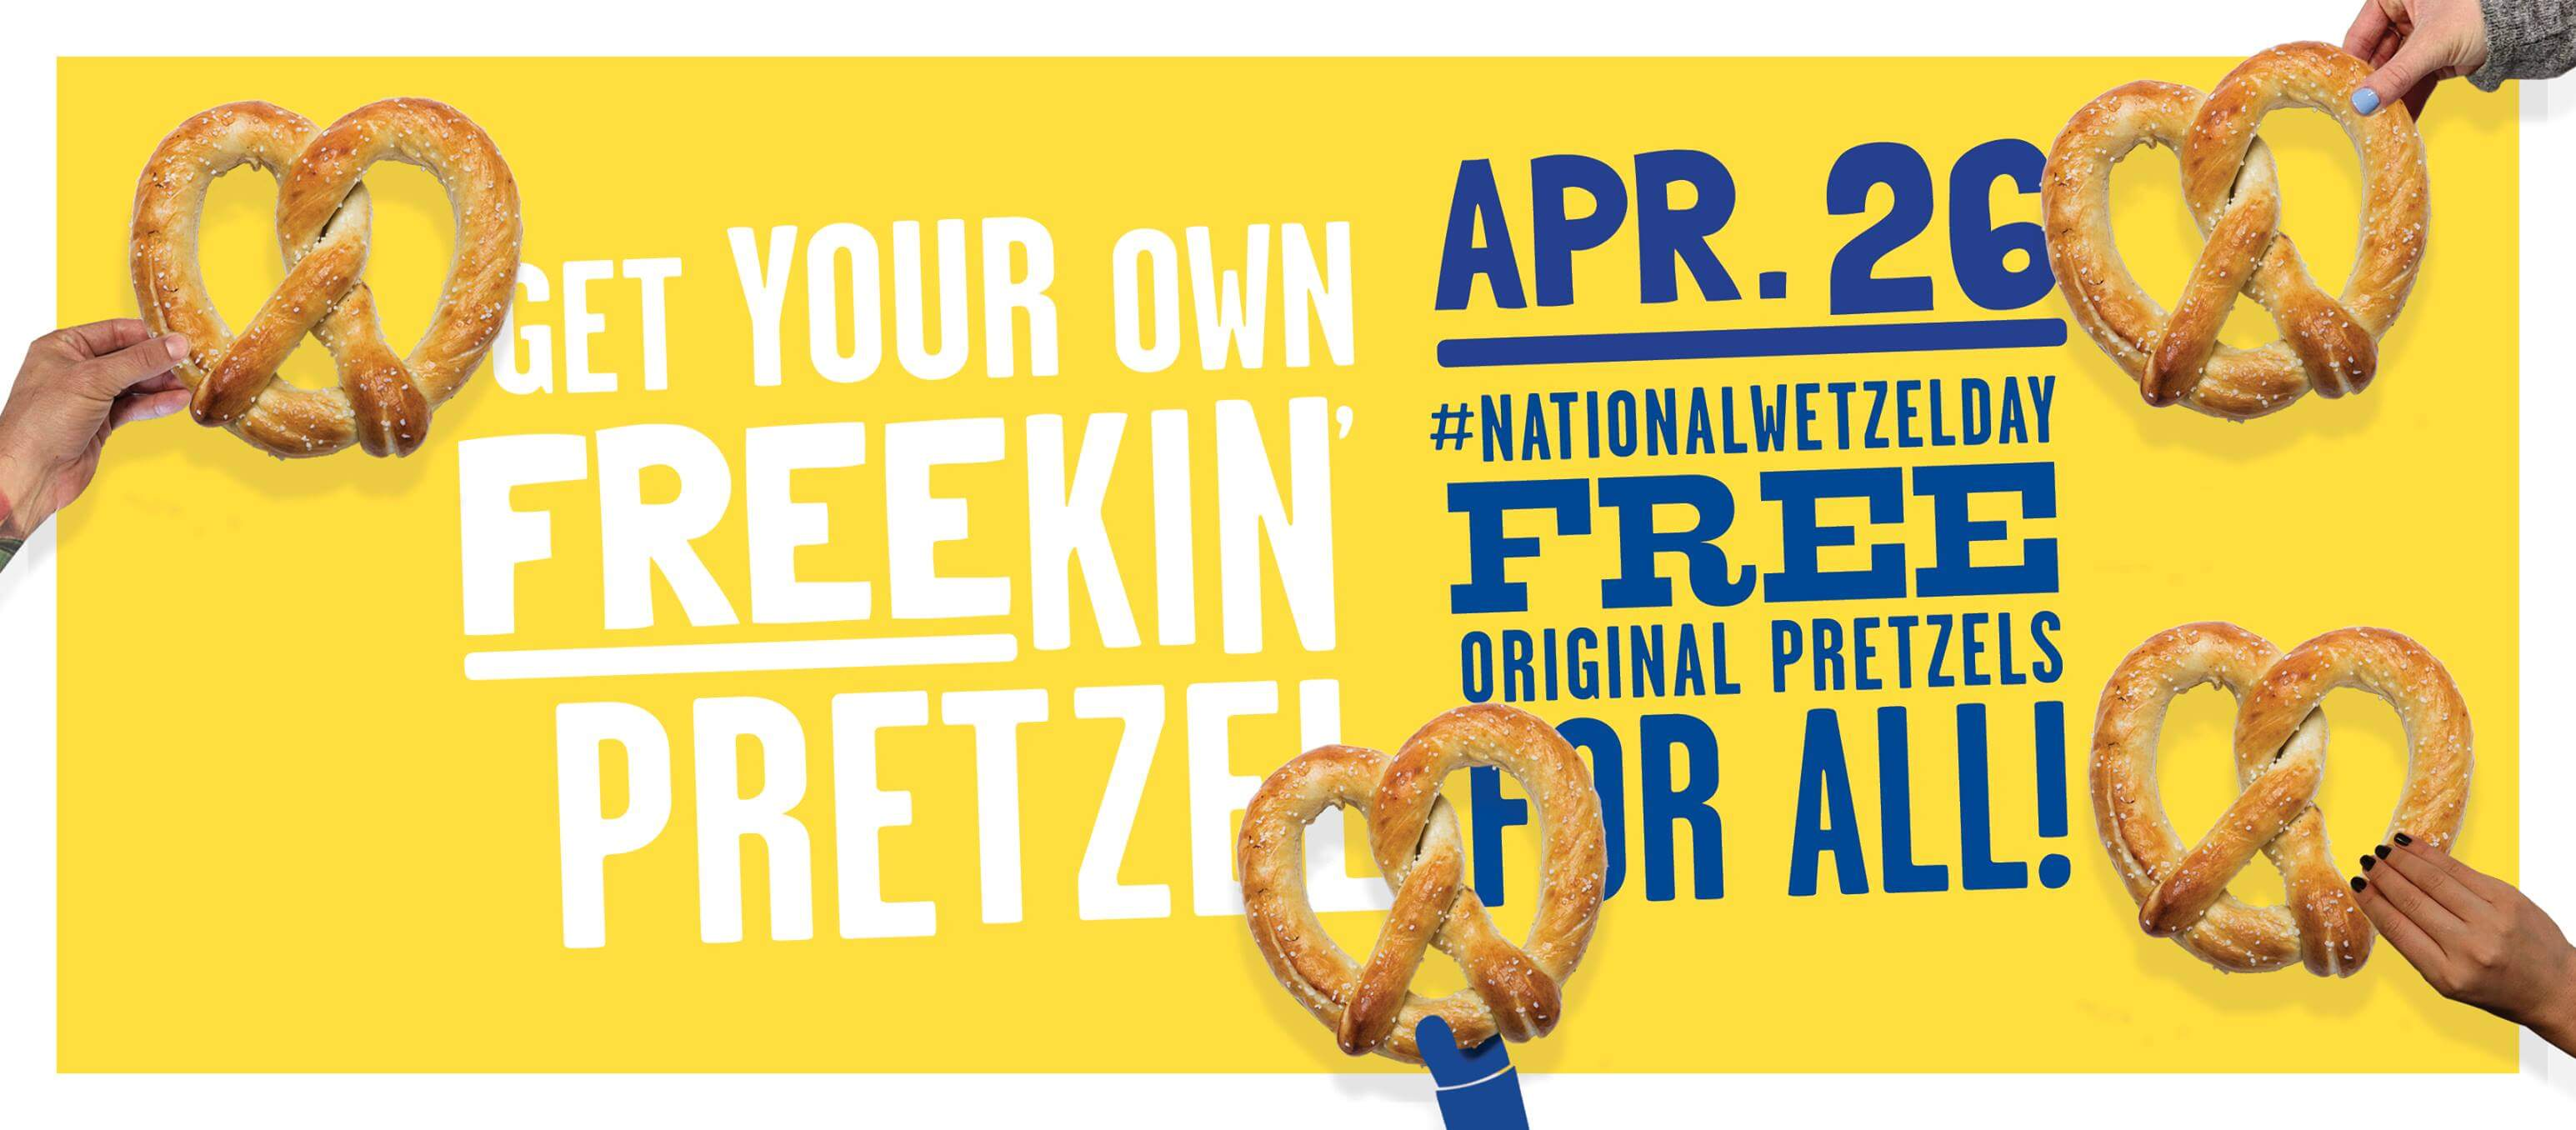 image relating to Philly Pretzel Factory Coupons Printable titled Nationwide Pretzel Working day Freebies 2019 4/26 Residing Wealthy With